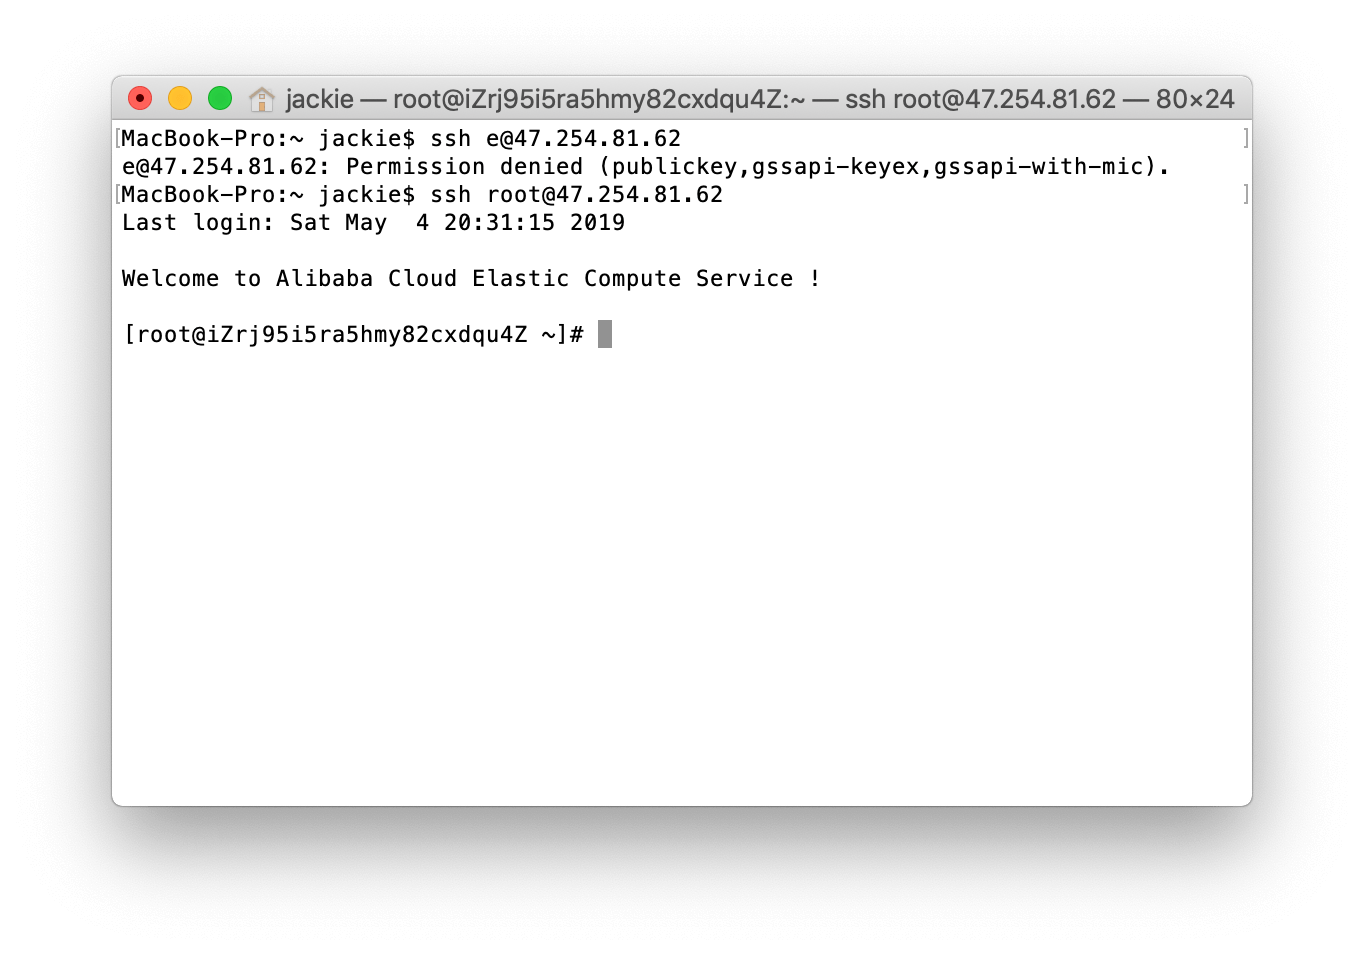 macos_sshkey_linux.png